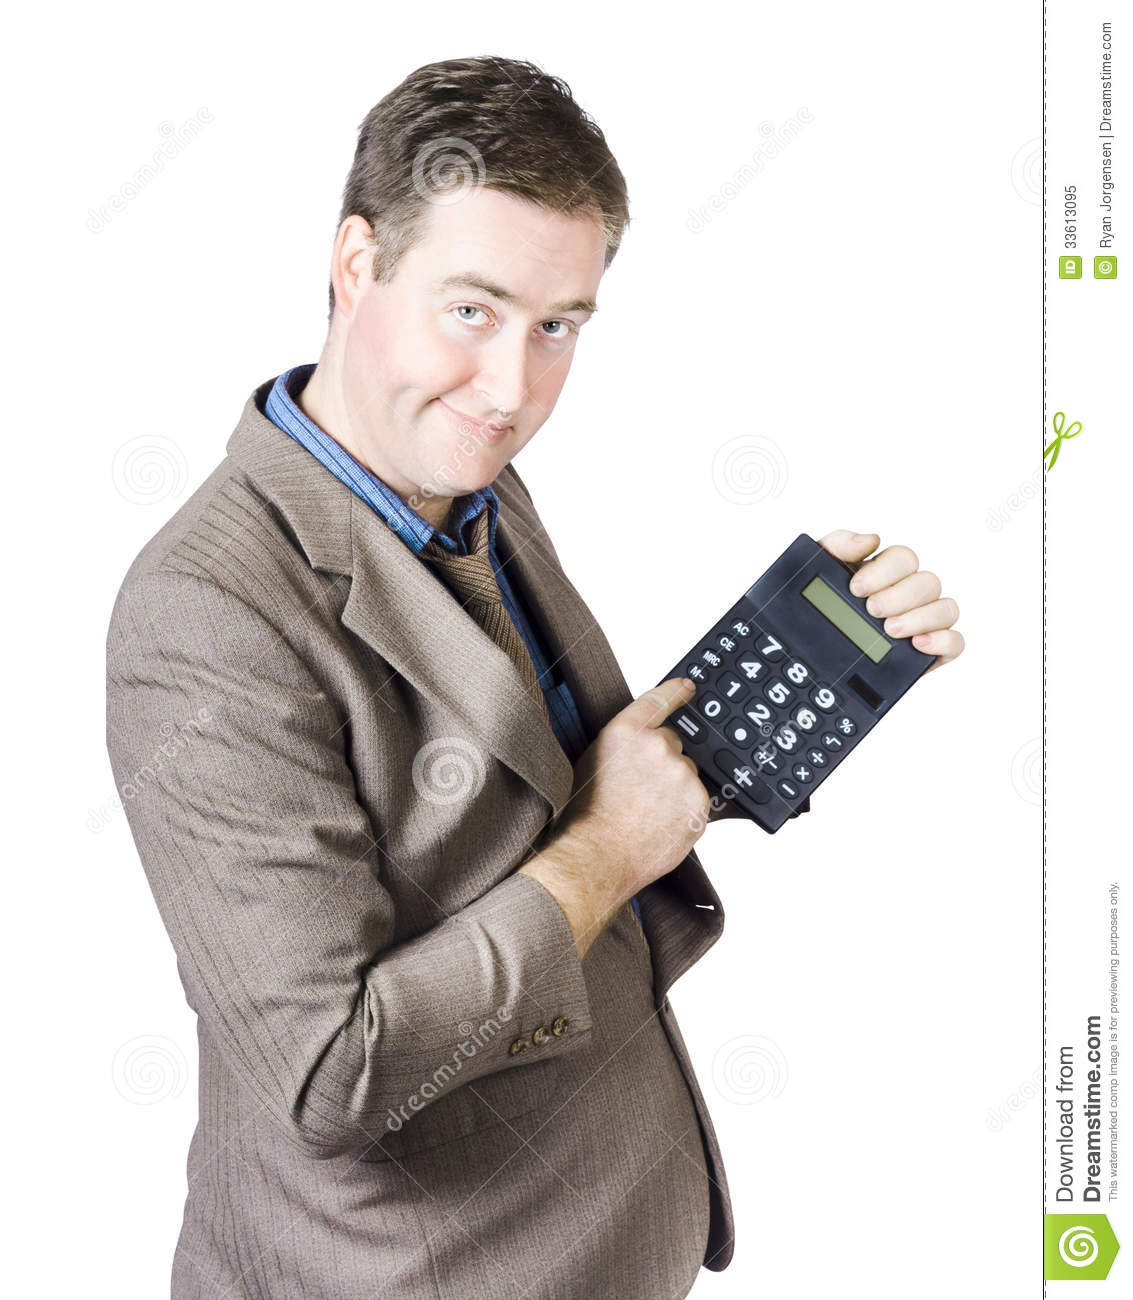 Accounting Business Man Holding Calculator Stock Image